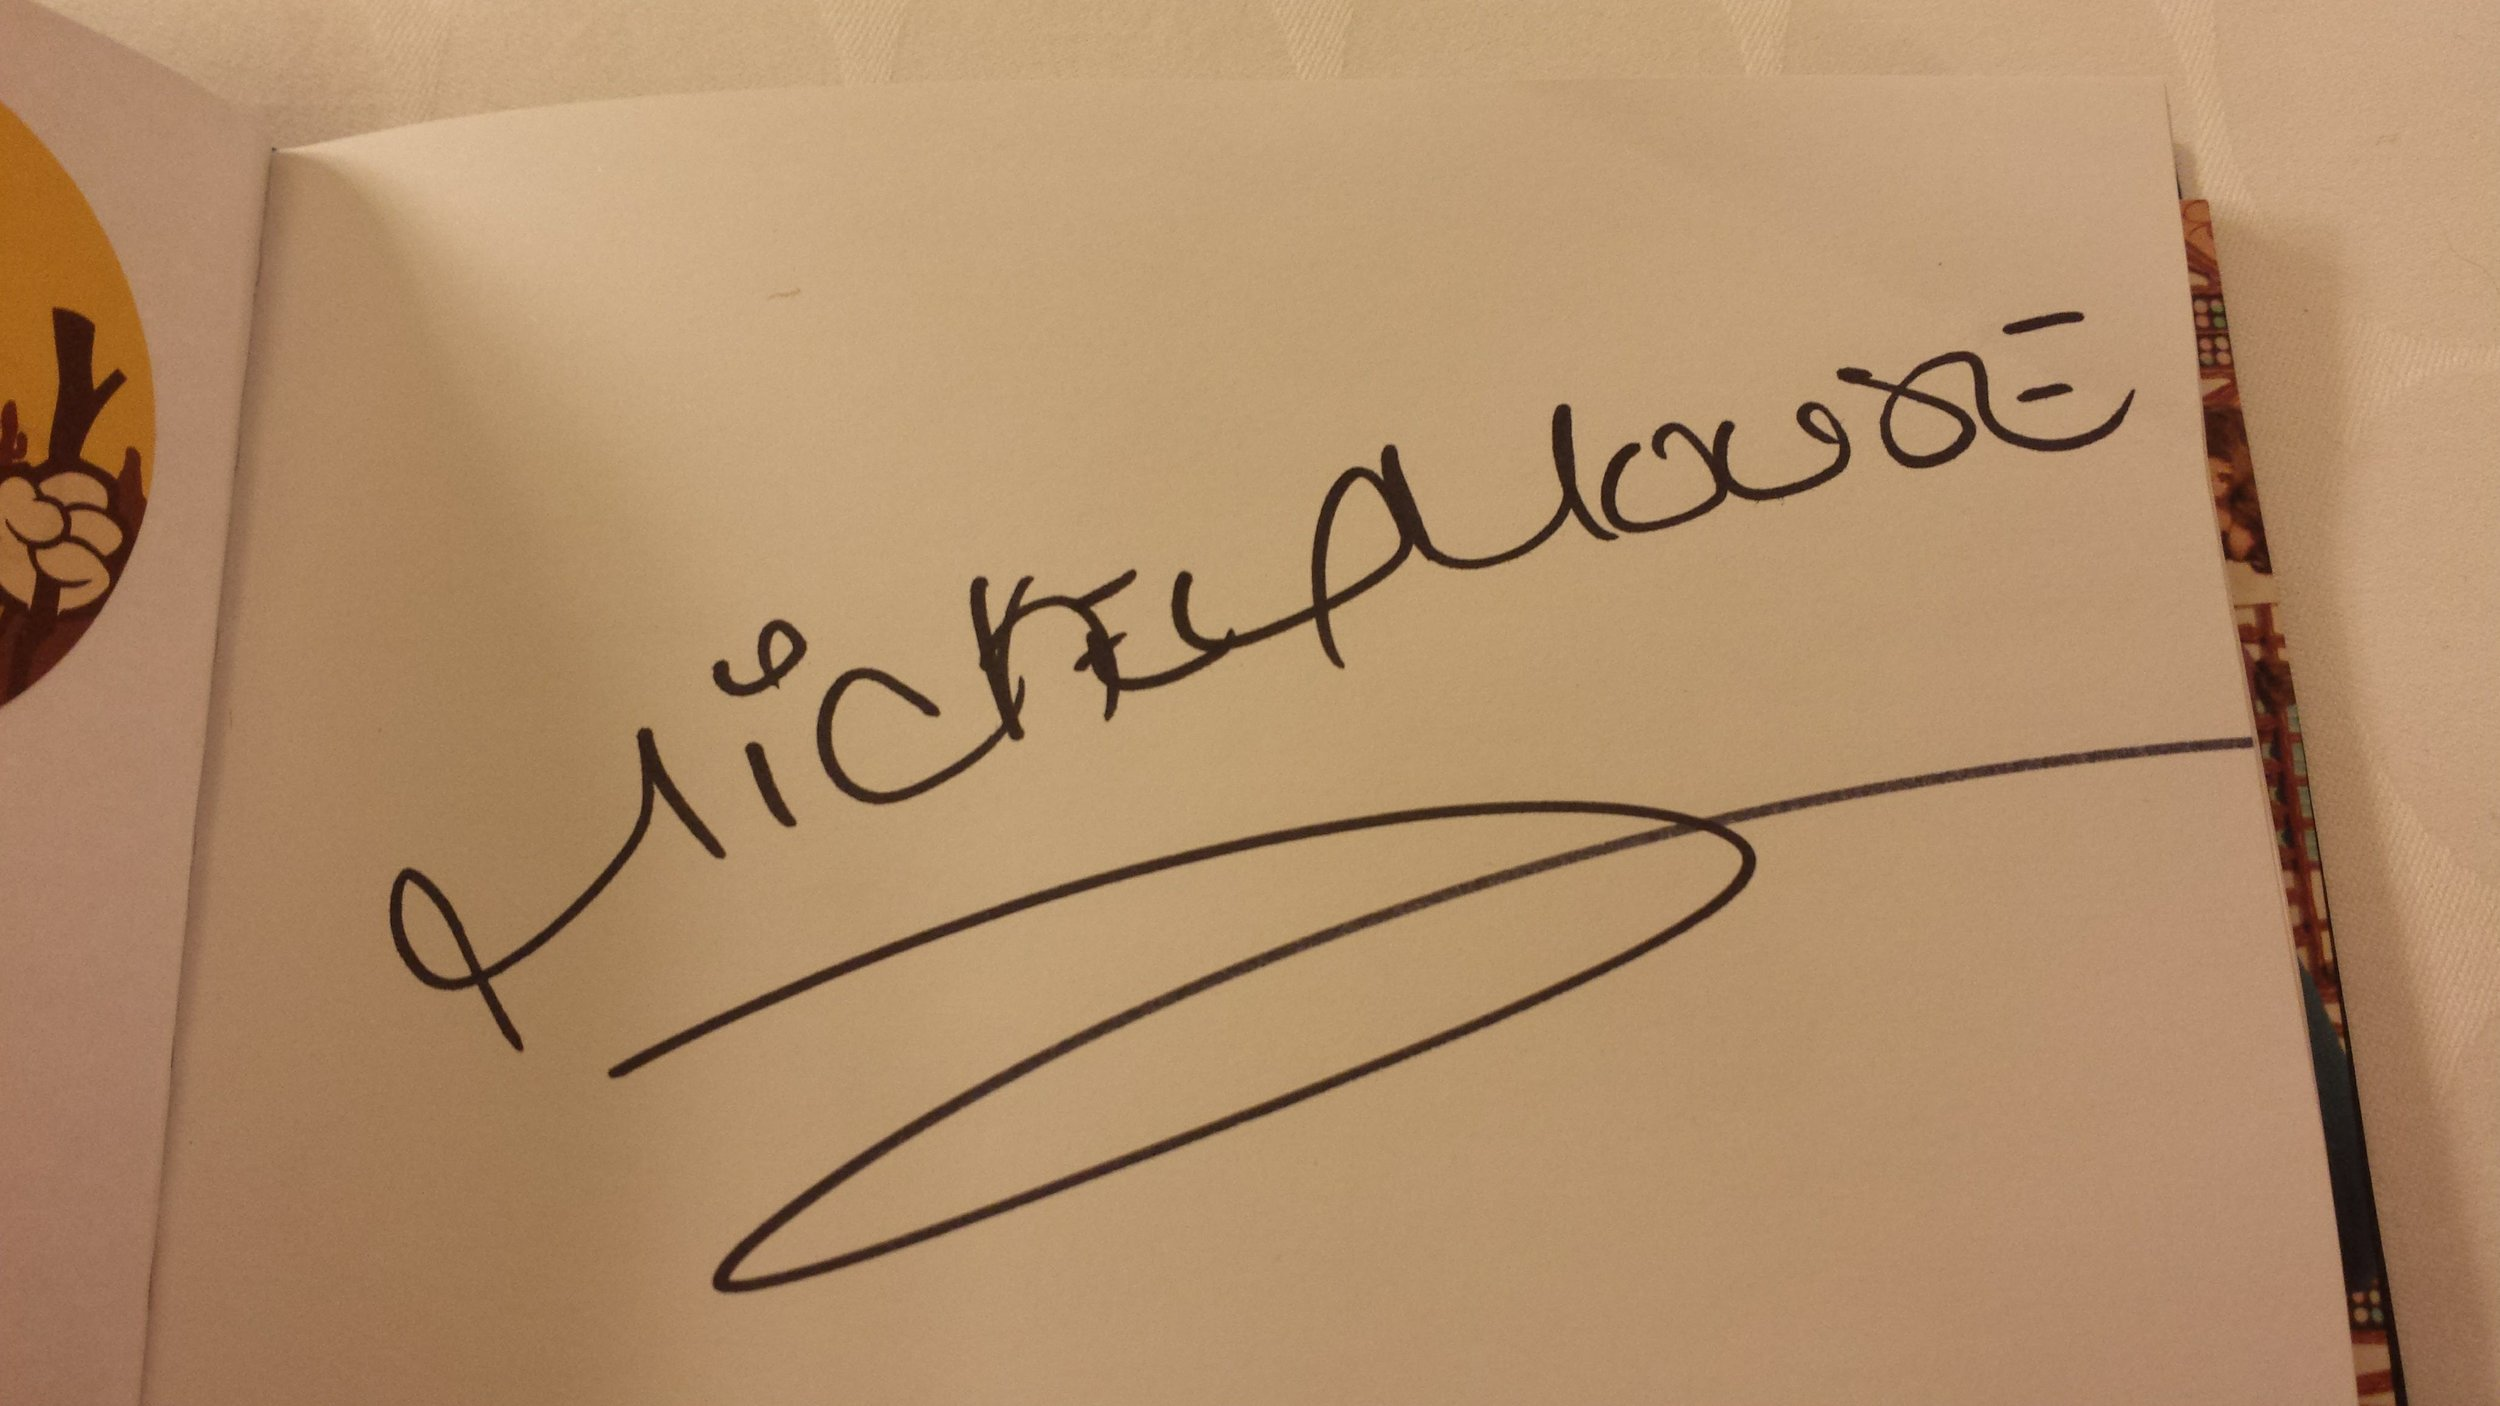 An autograph of mickey mouse.